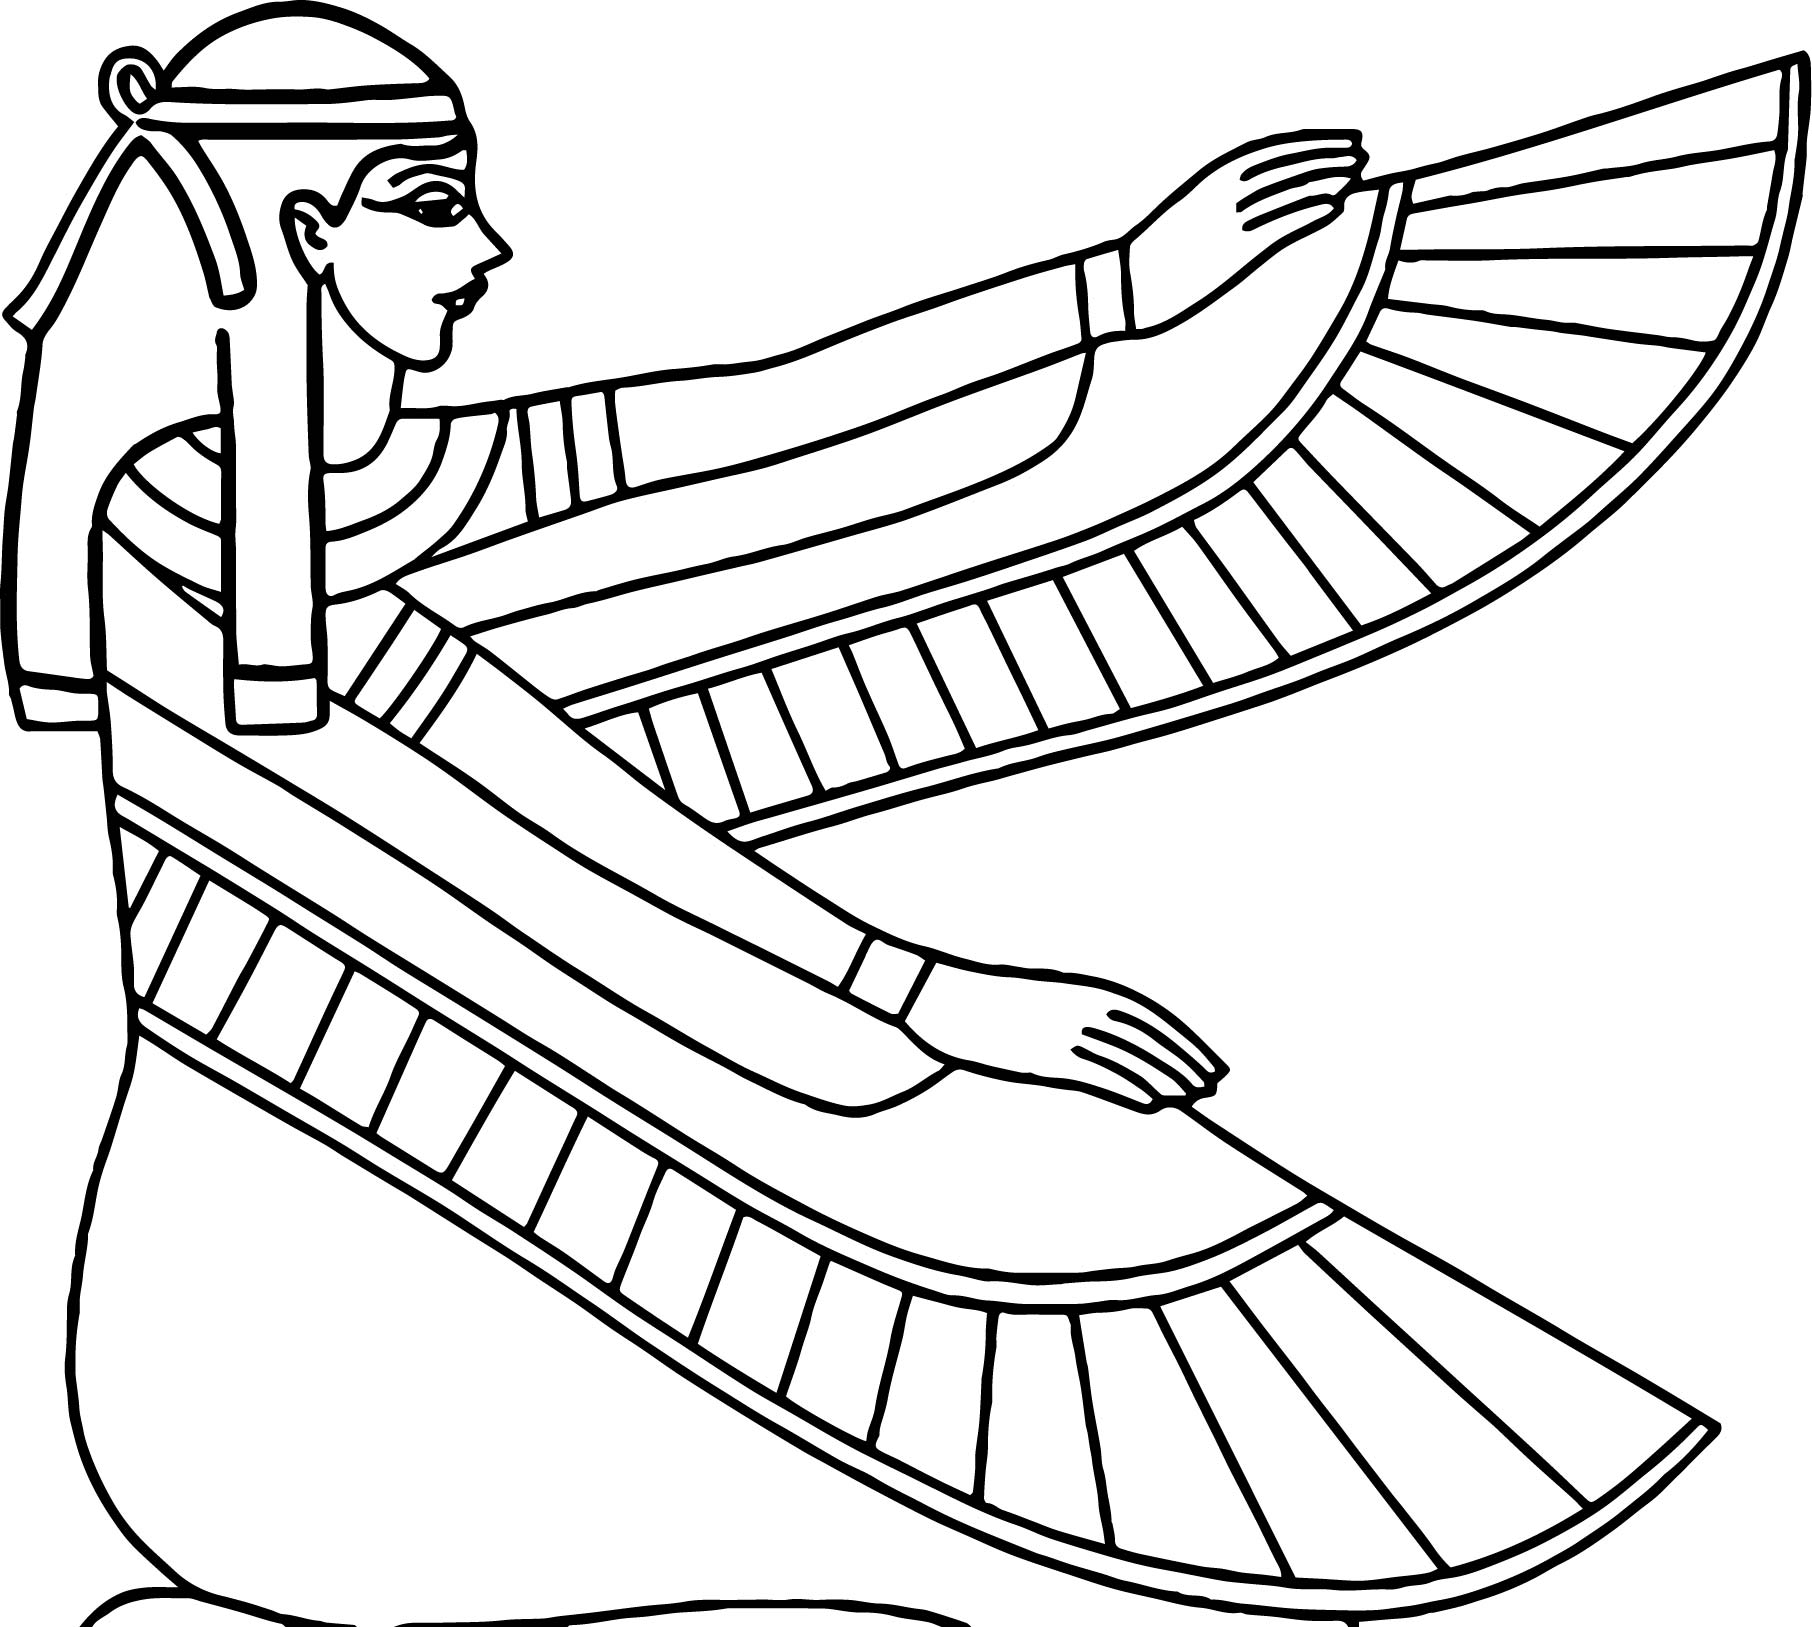 Maat egyptian goddess coloring page for Egypt coloring page